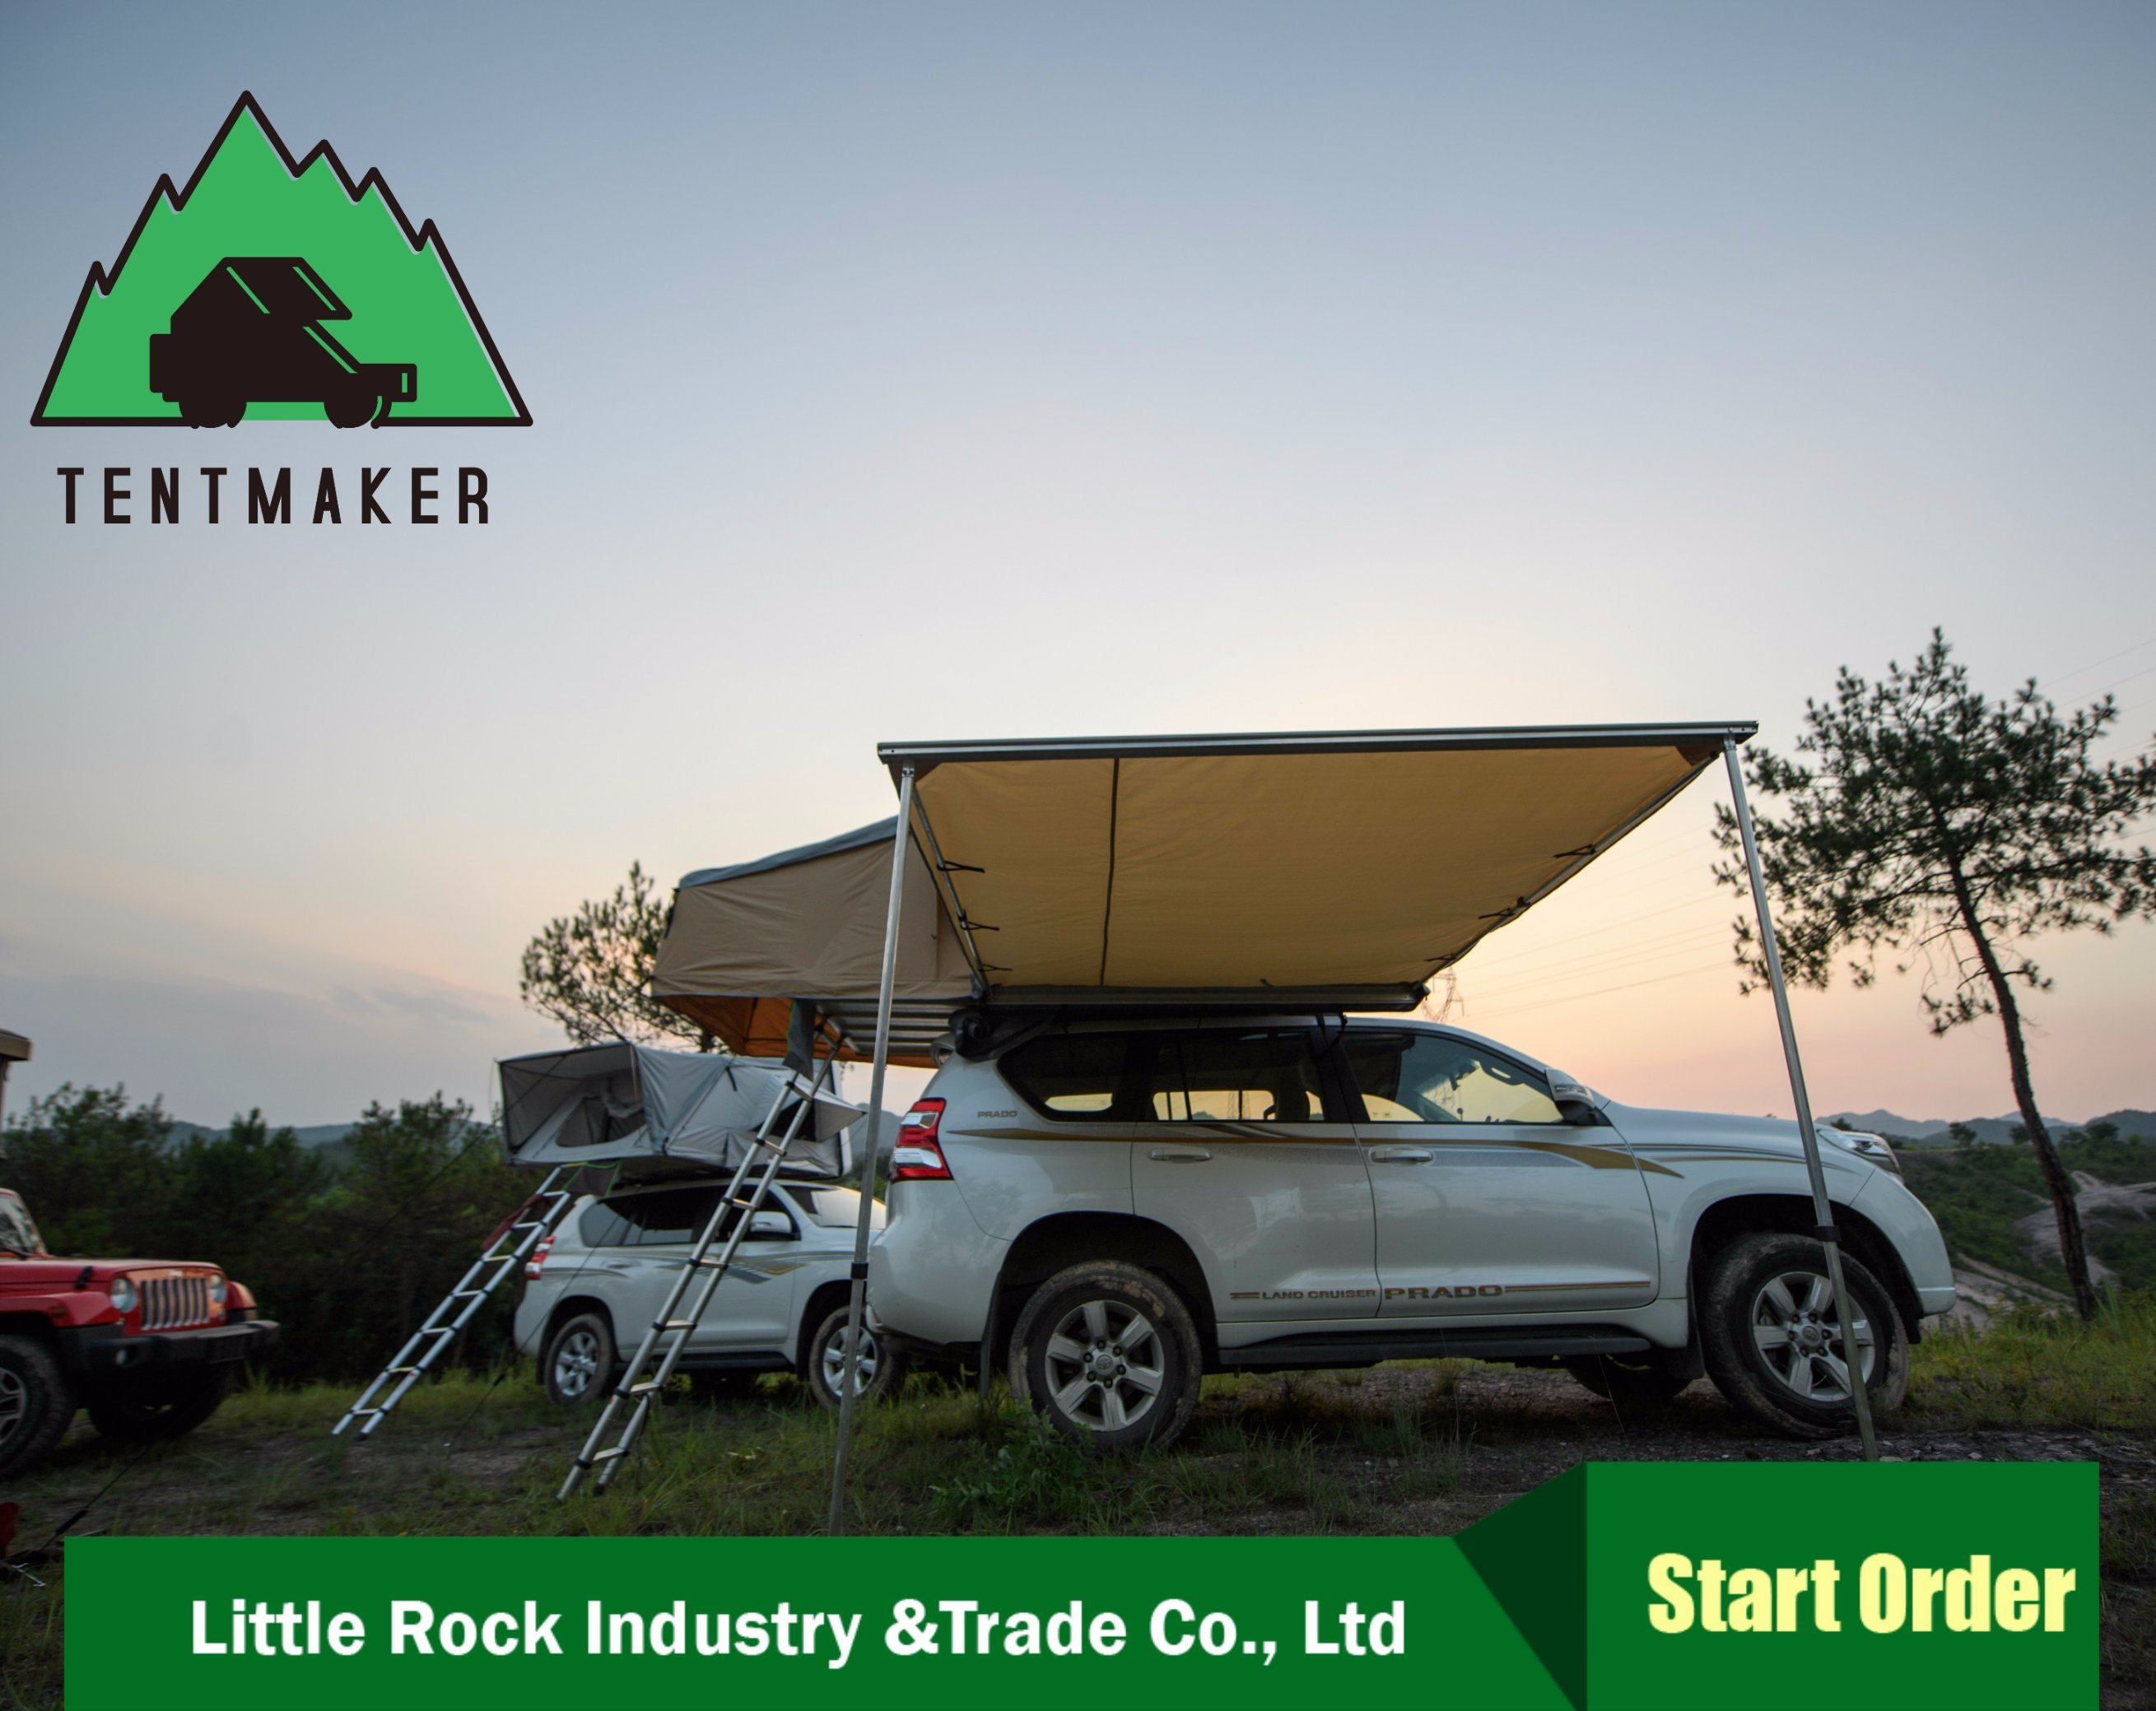 4Wd Awning Tent [hot item] high quality 4wd side retractable uv waterproof car awning tent